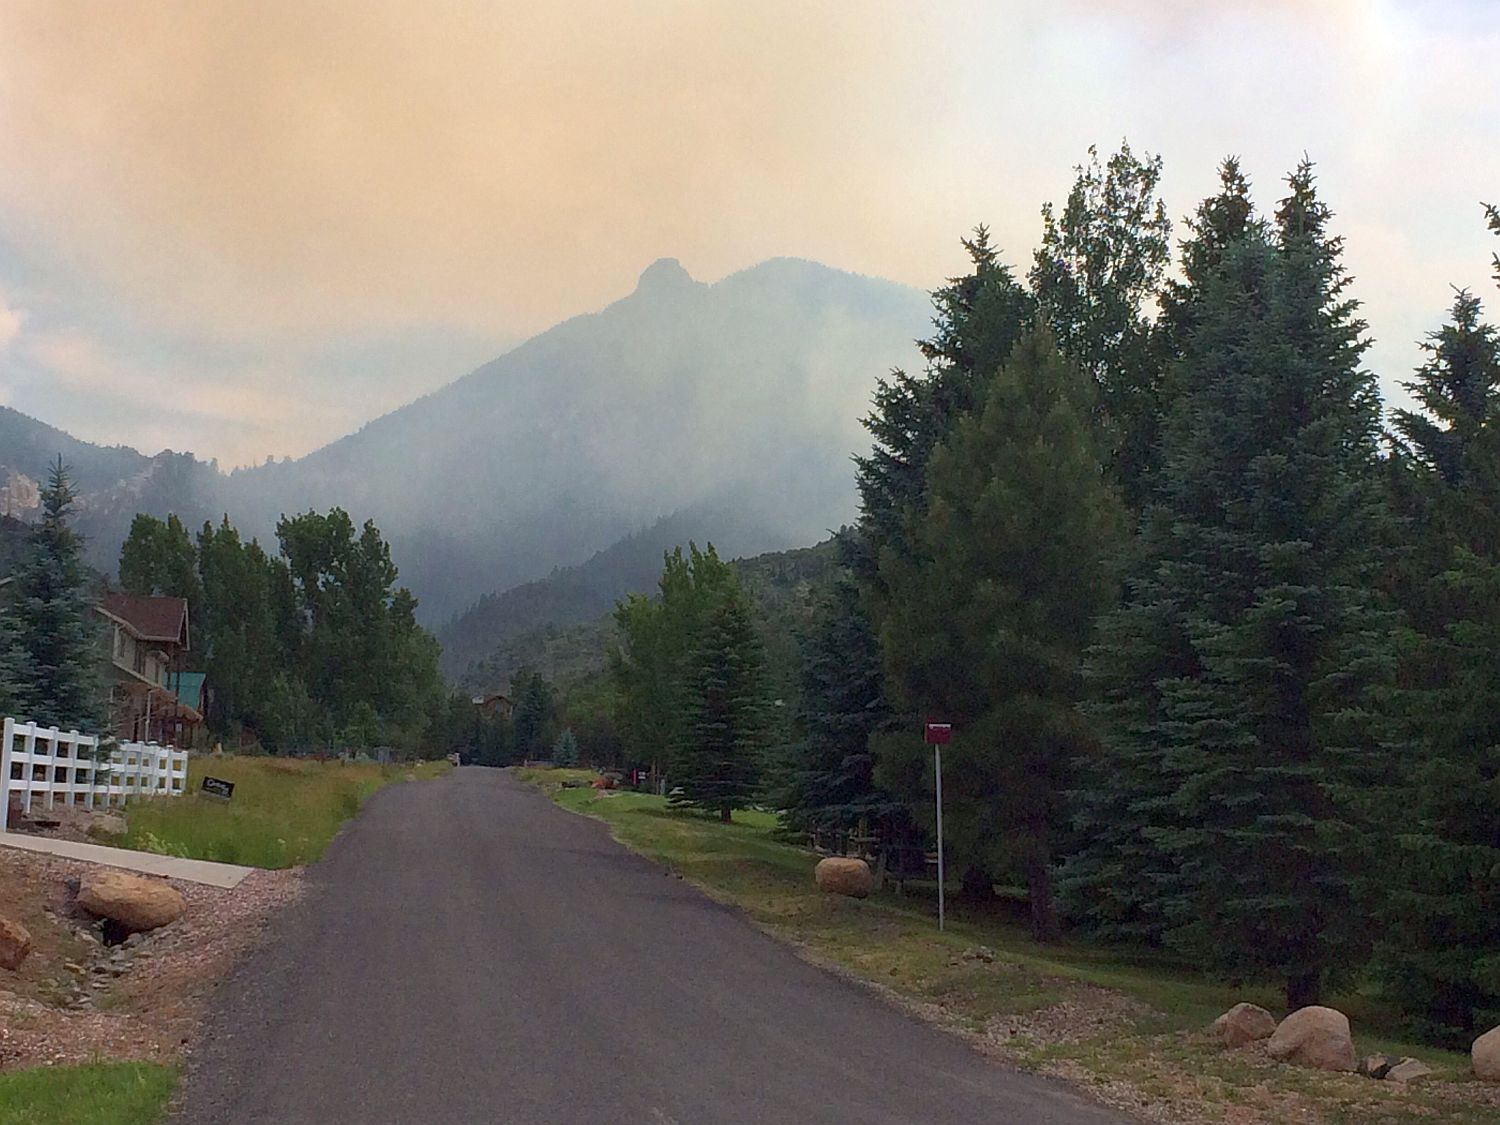 Smoke rises over the hills of Lloyd Canyon Tuesday afternoon. Washington County, Utah, June 21, 2016 | Photo by Tyler Truman, St. George News